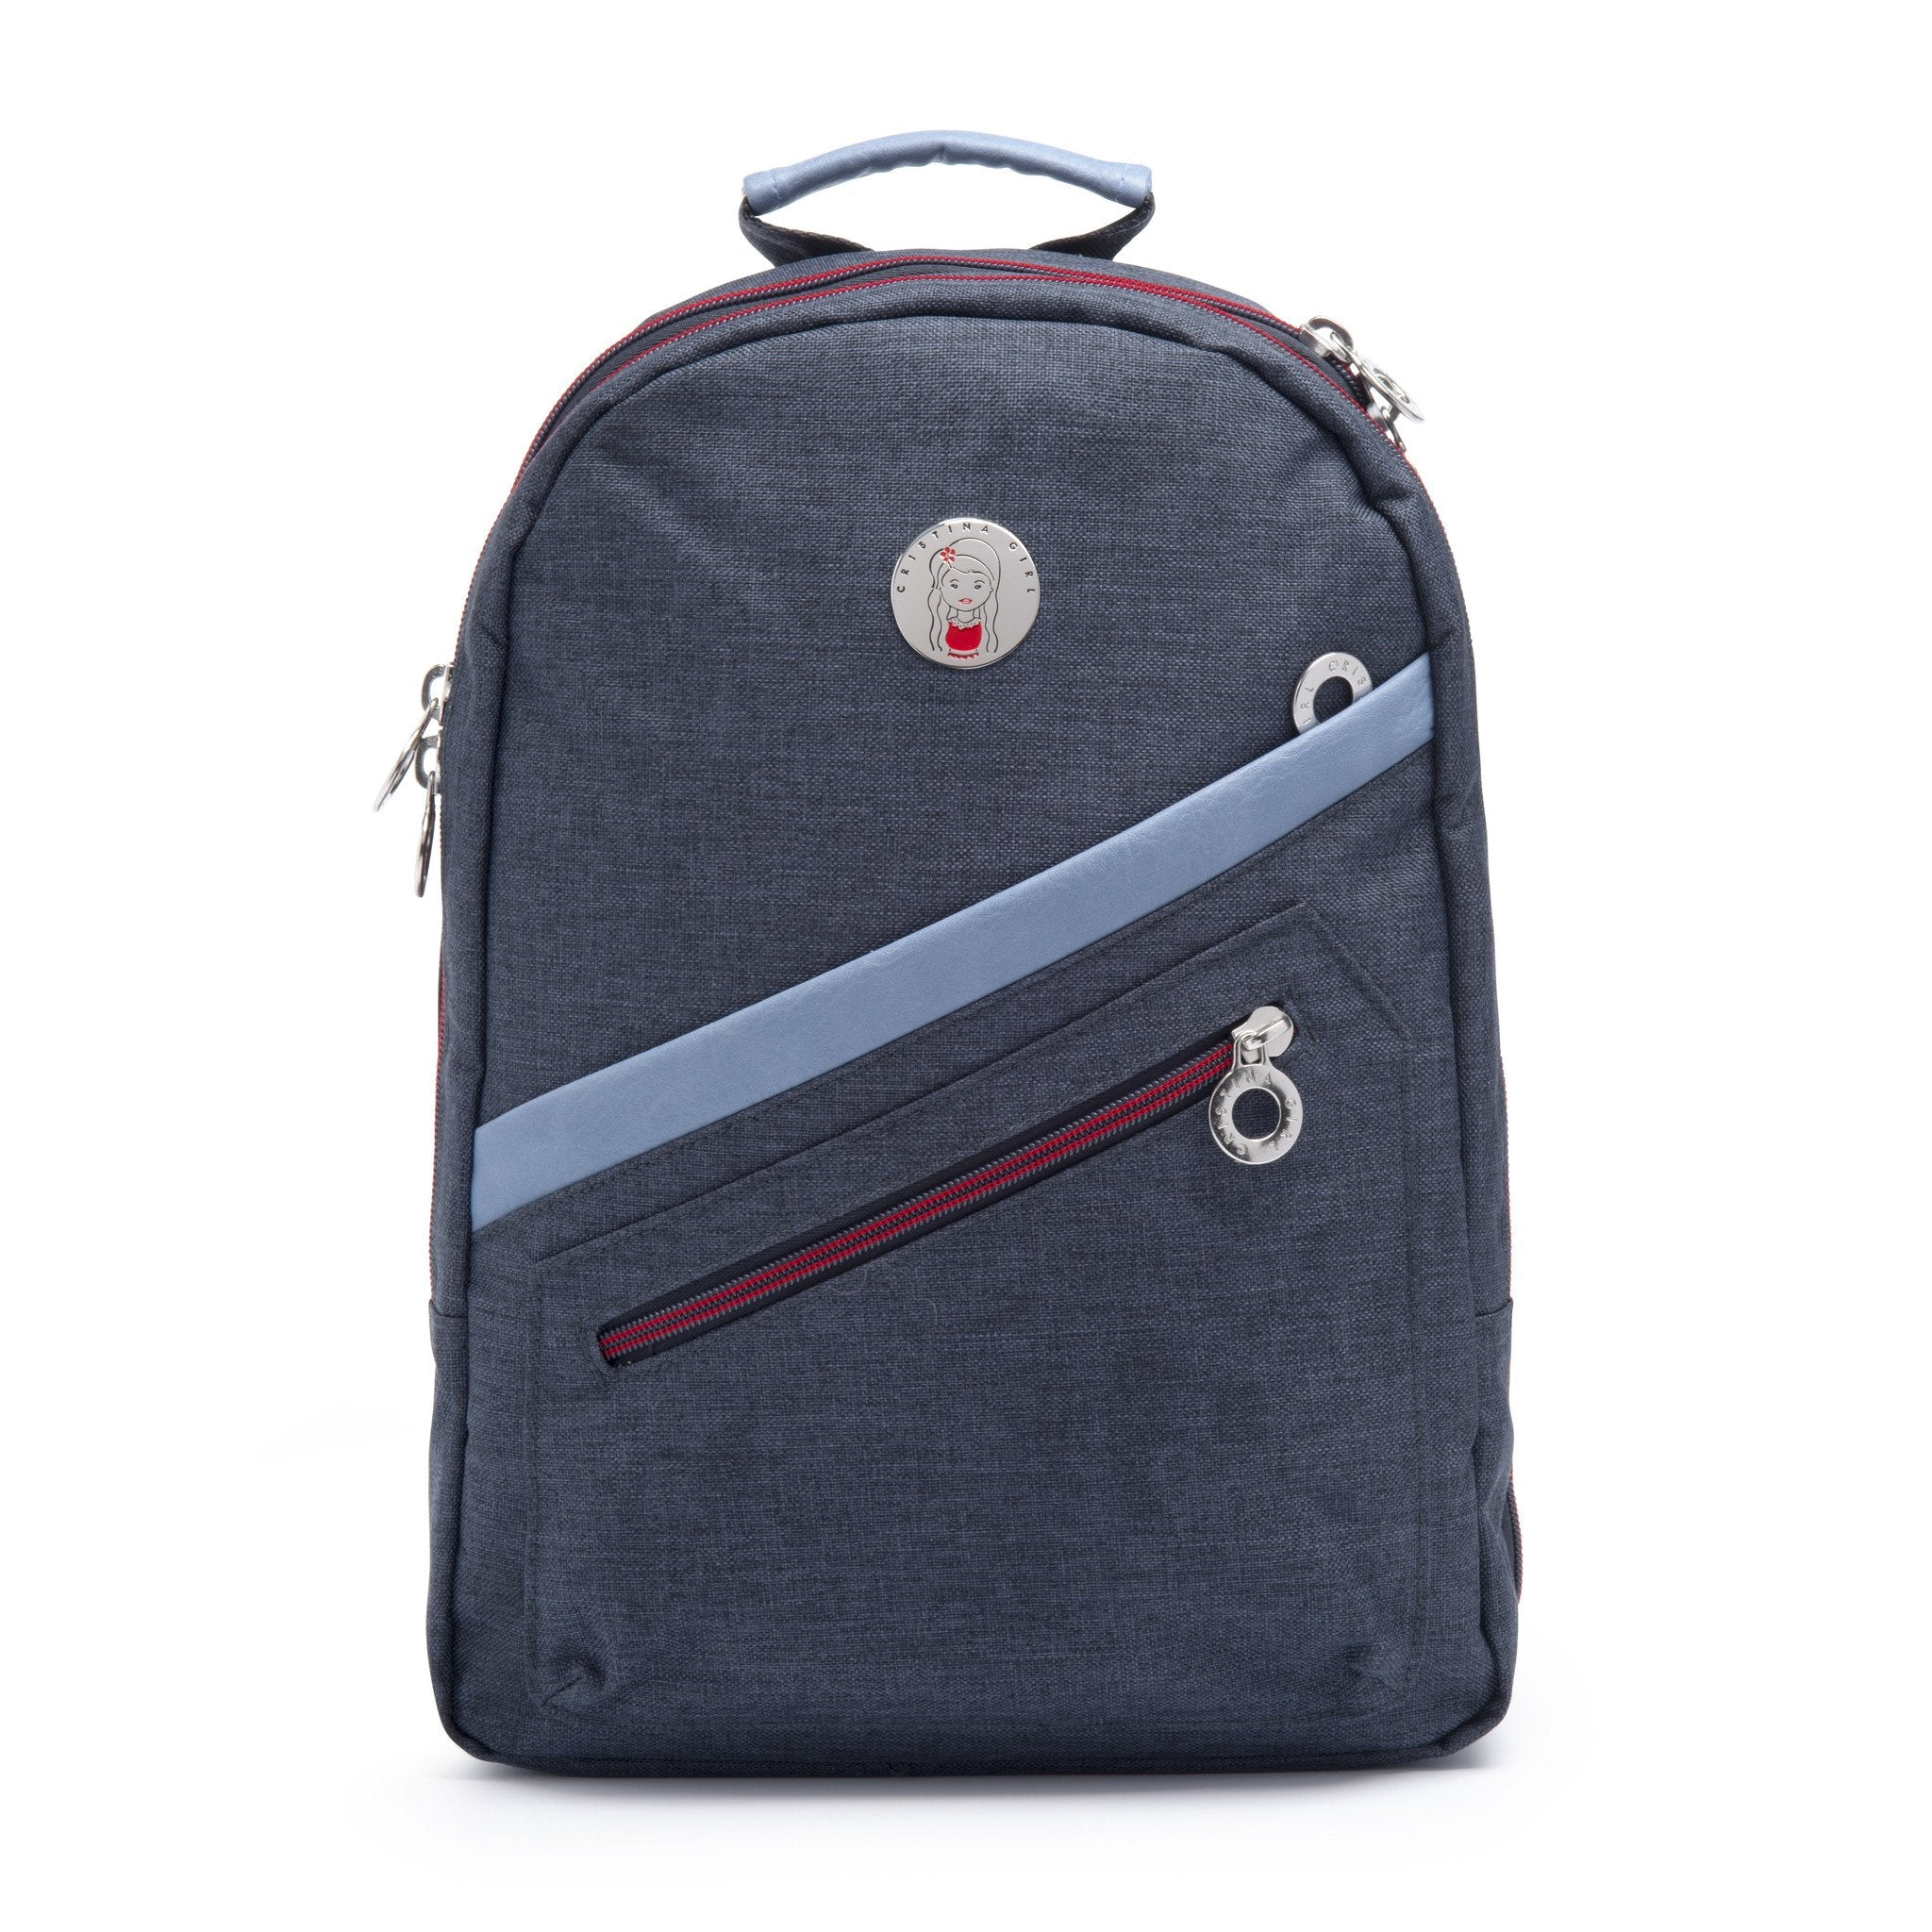 Cristina Girl Mini Backpack Ella Collection - Sapphire